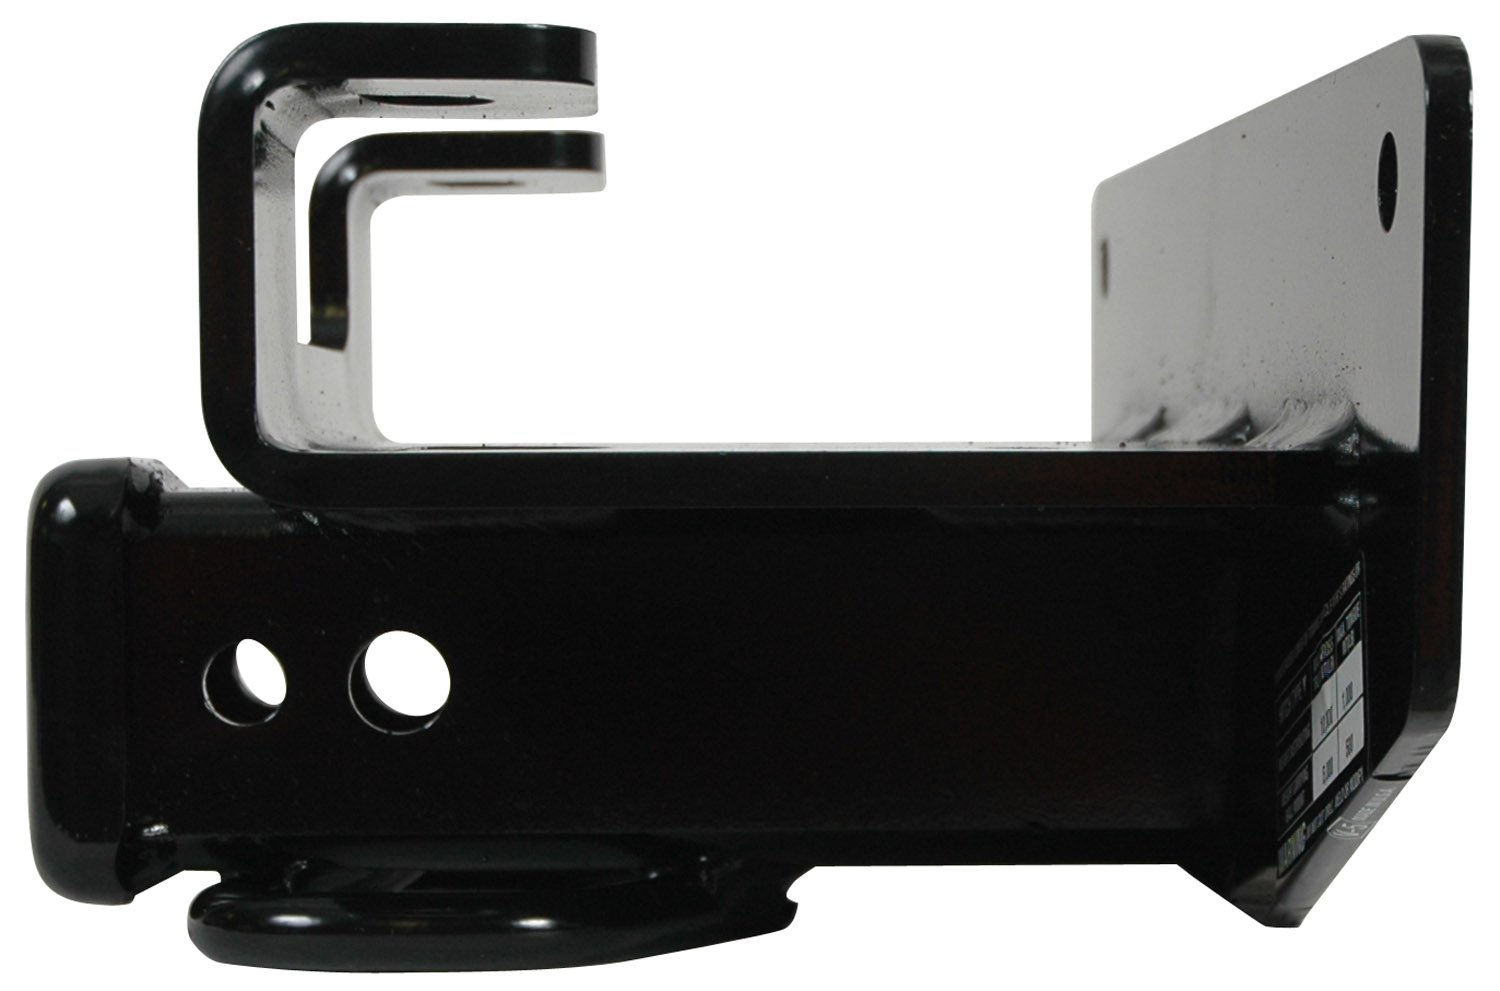 Reese 37084 Class III Custom-Fit Hitch with 2 Square Receiver opening includes Hitch Plug Cover Reese Towpower